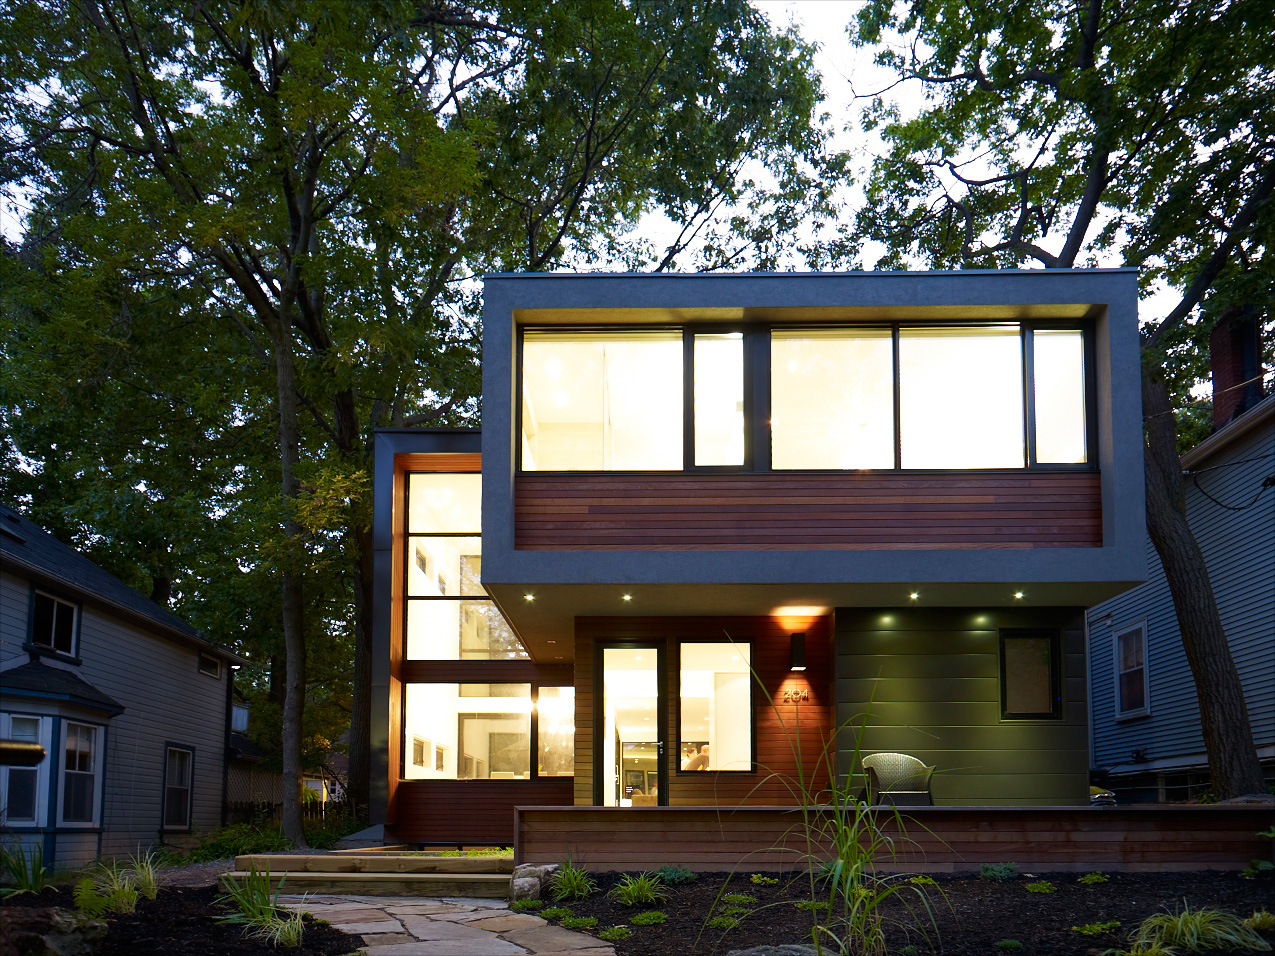 Toronto Beaches home with modern facade and accessible design